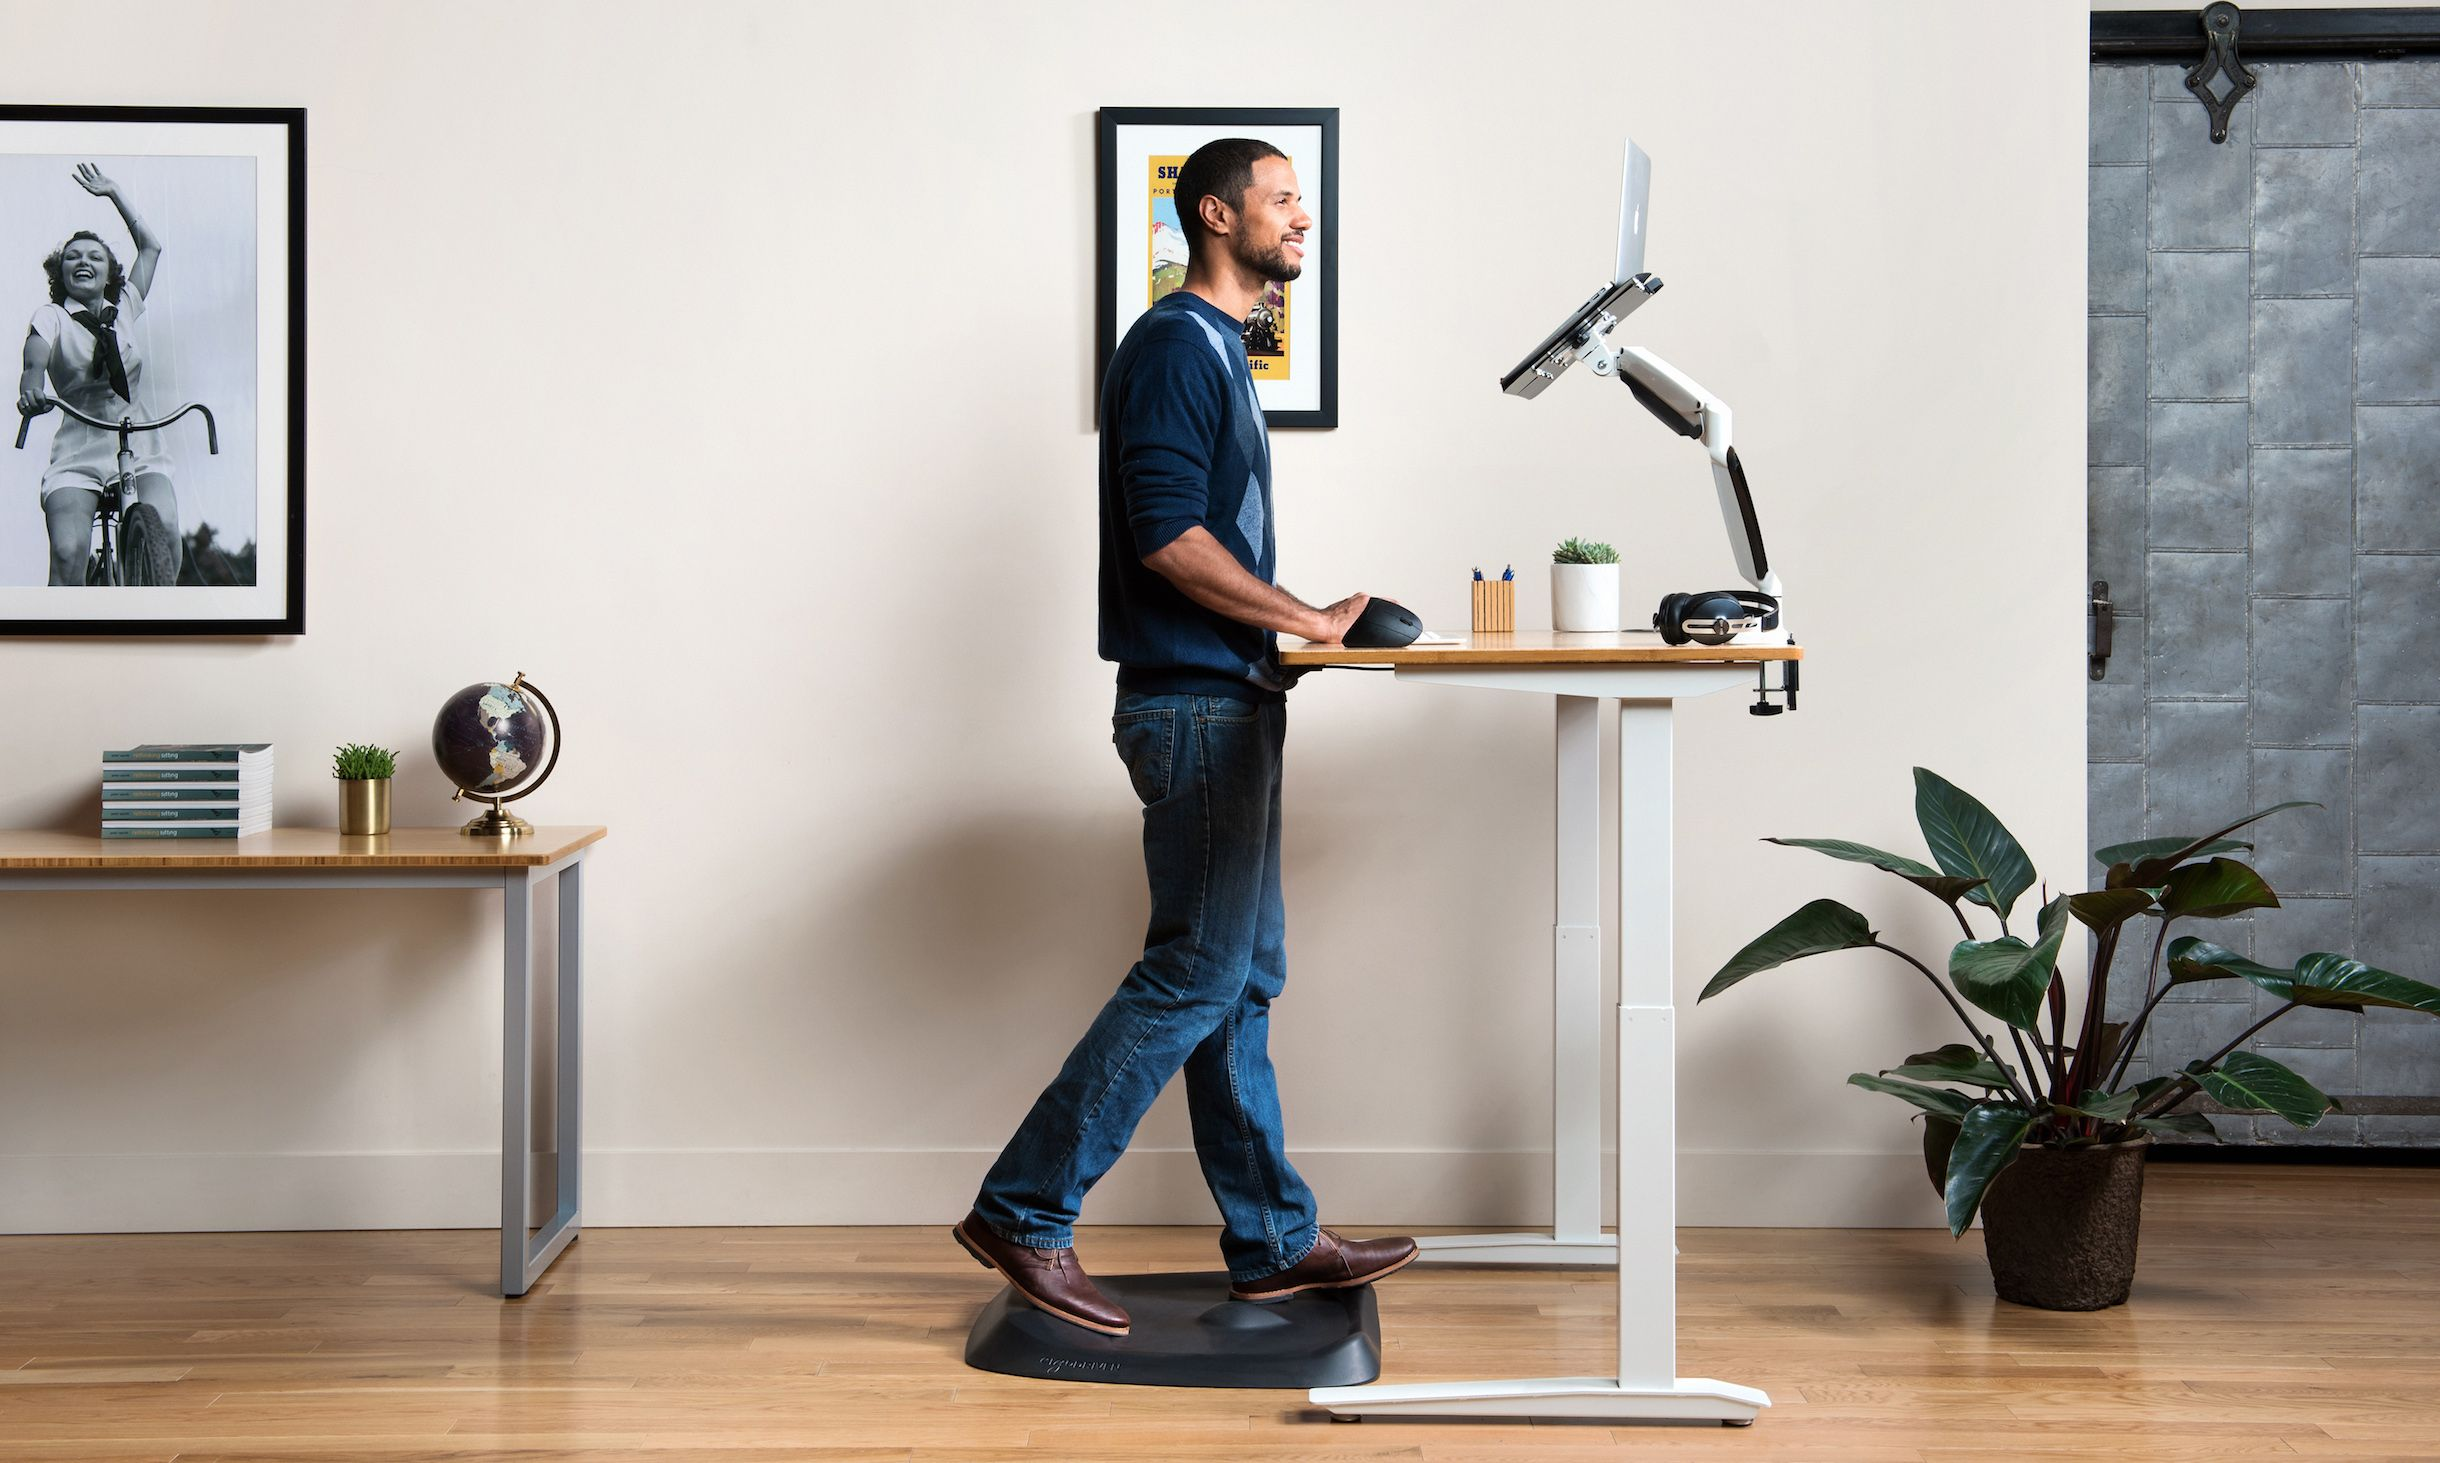 ergodriven by dp com now large standing ergo start products amazon spark the perfect desk office